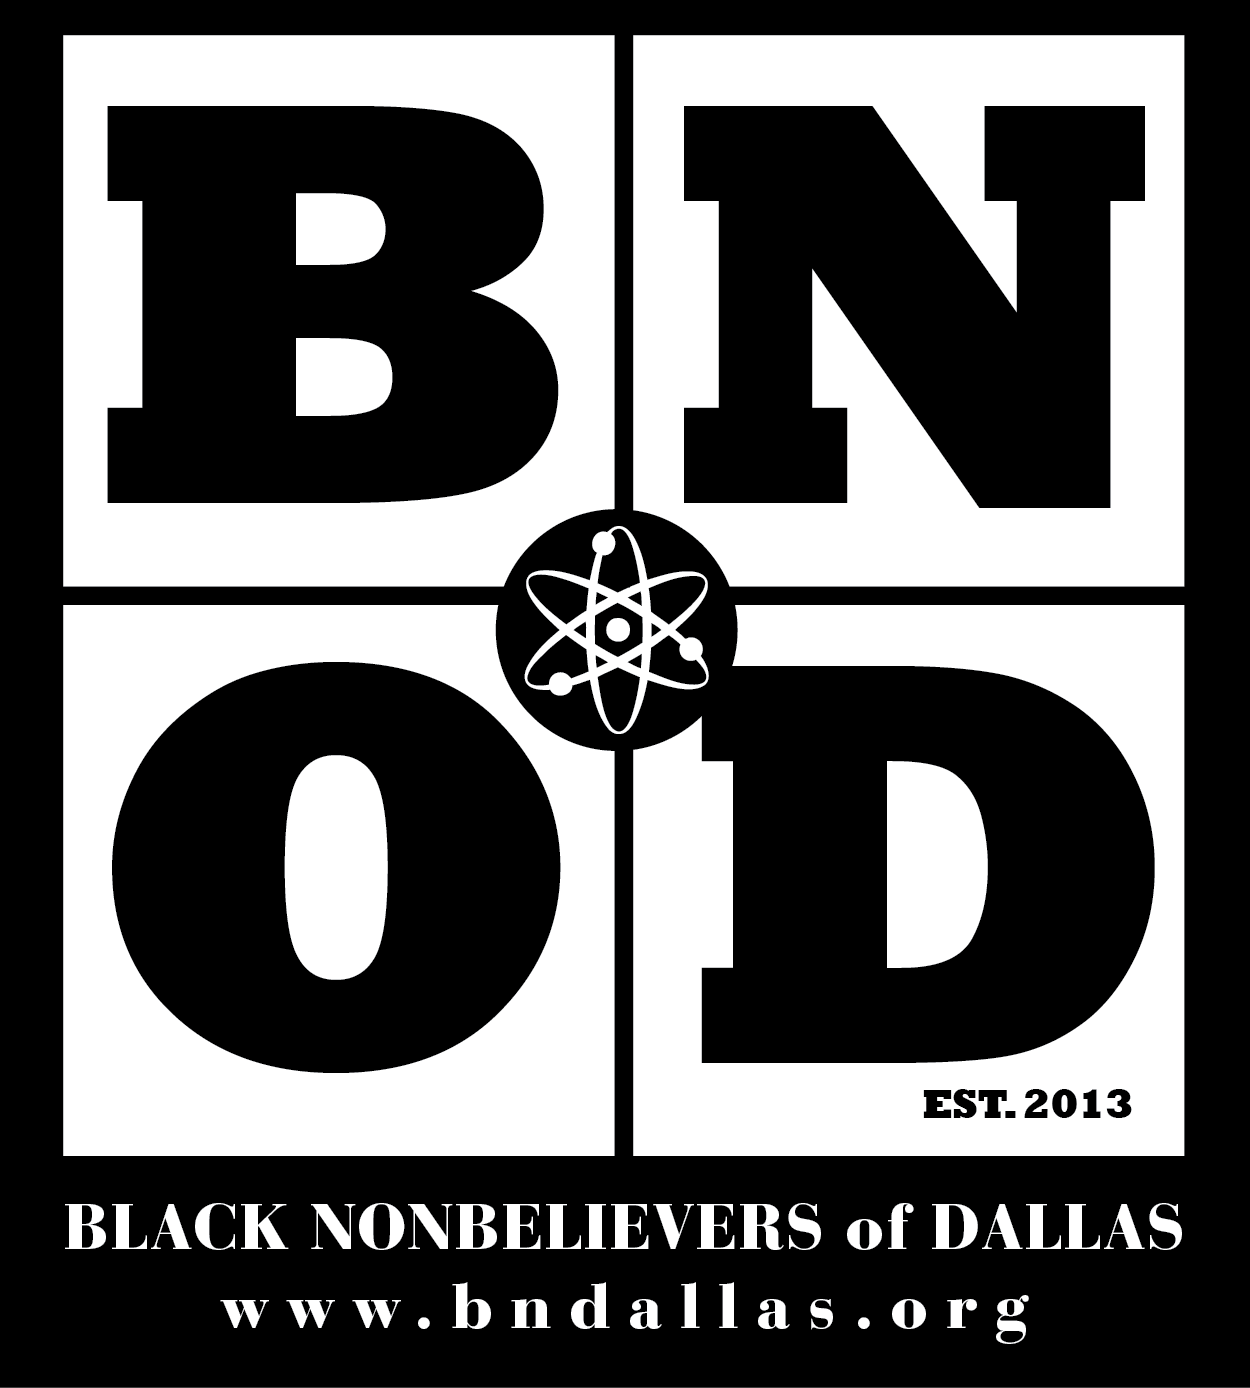 Black Nonbelievers of Dallas